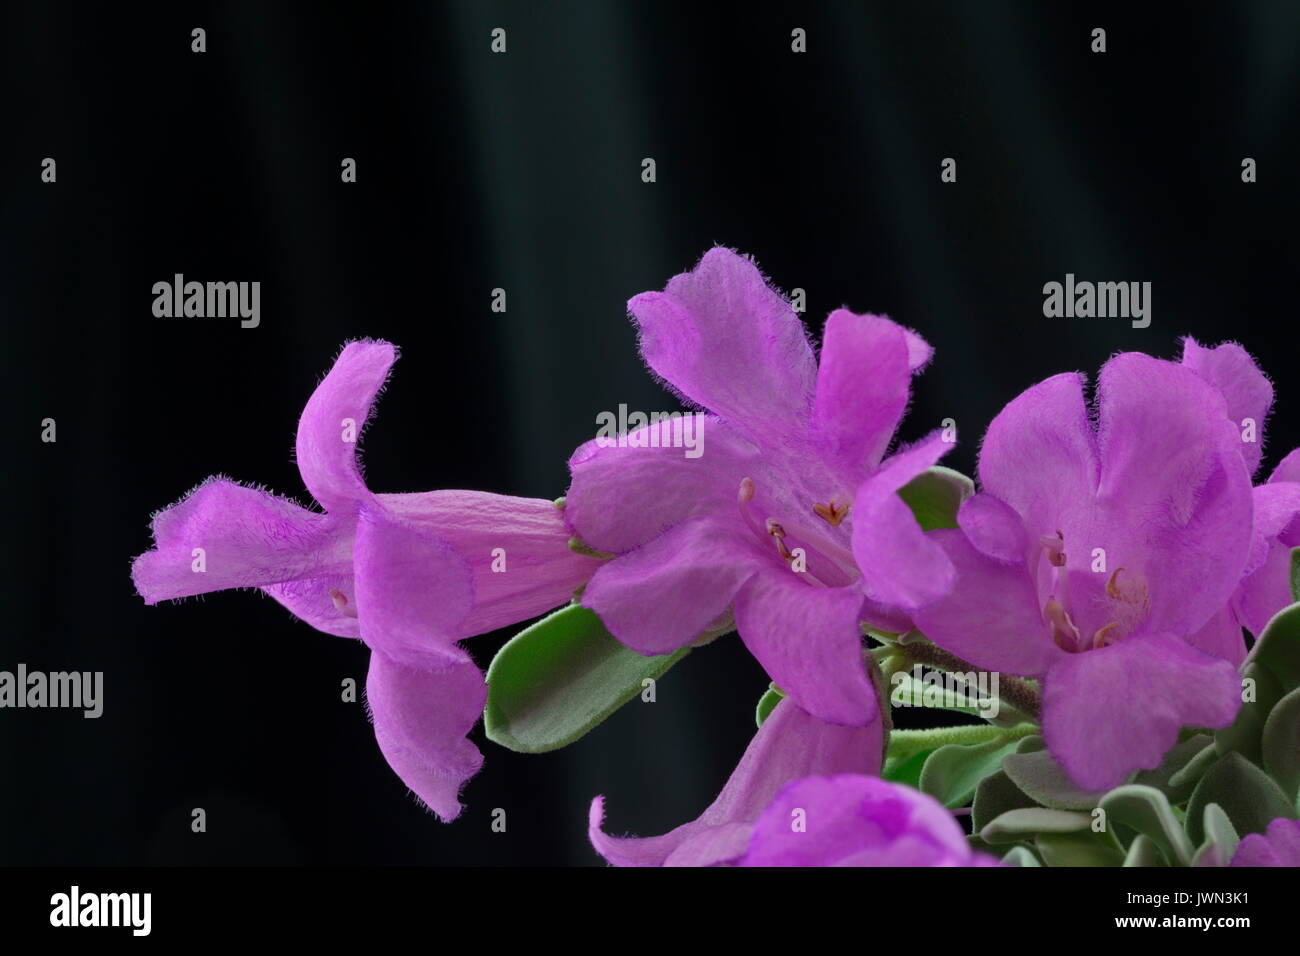 Blue Texas Ranger flowers against black satin is elegant horizontal background with copy space above - Stock Image